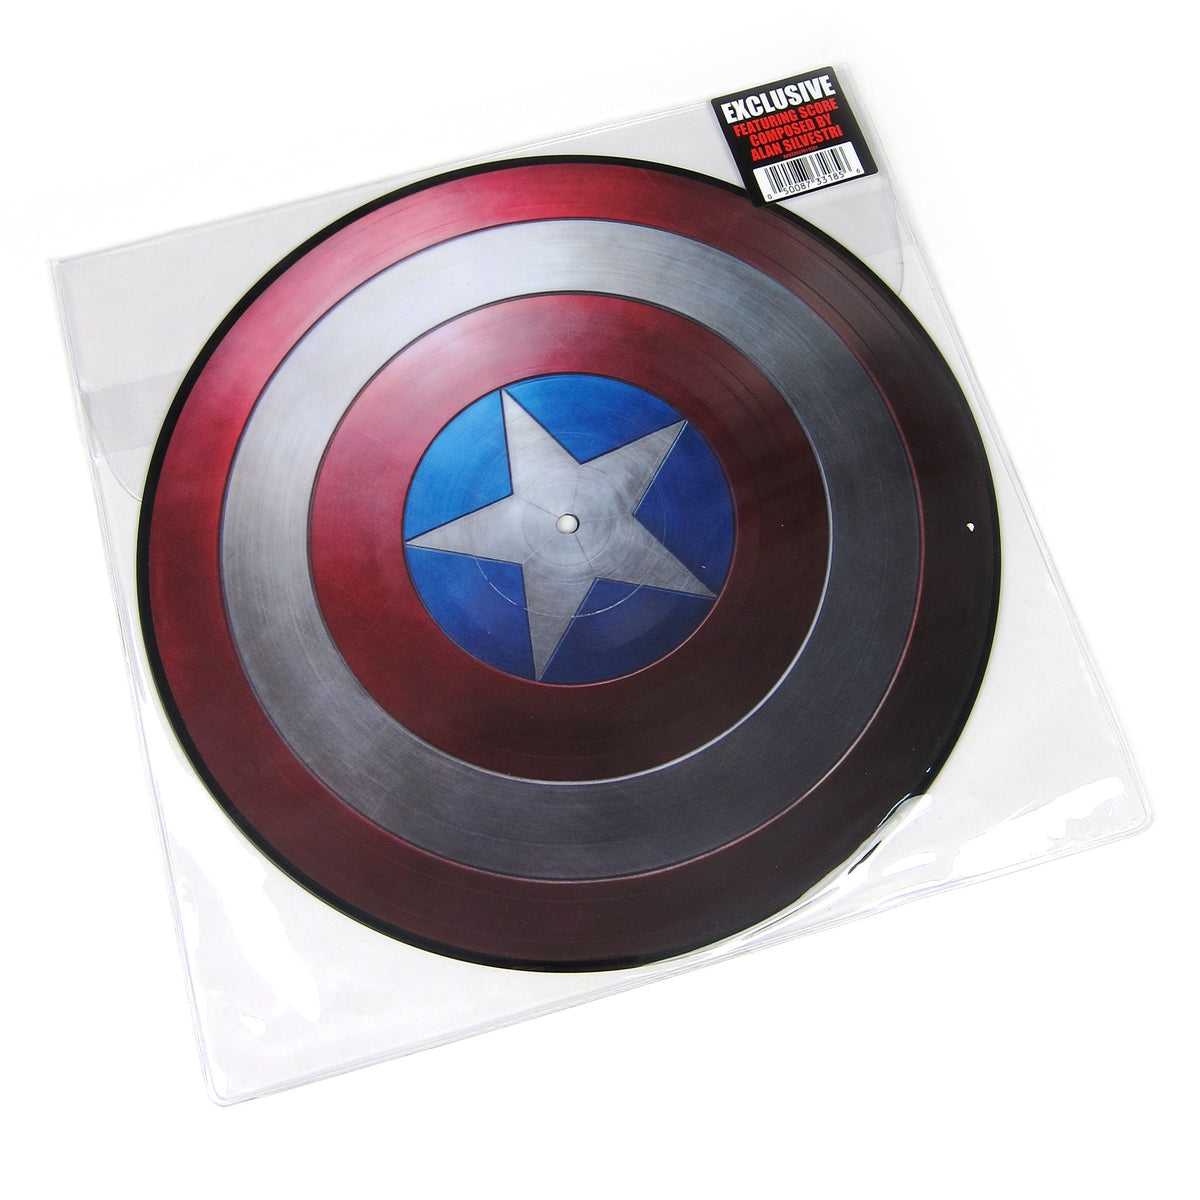 Alan Silvestri: Captain America The First Avenger Soundtrack (Pic Disc) Vinyl LP